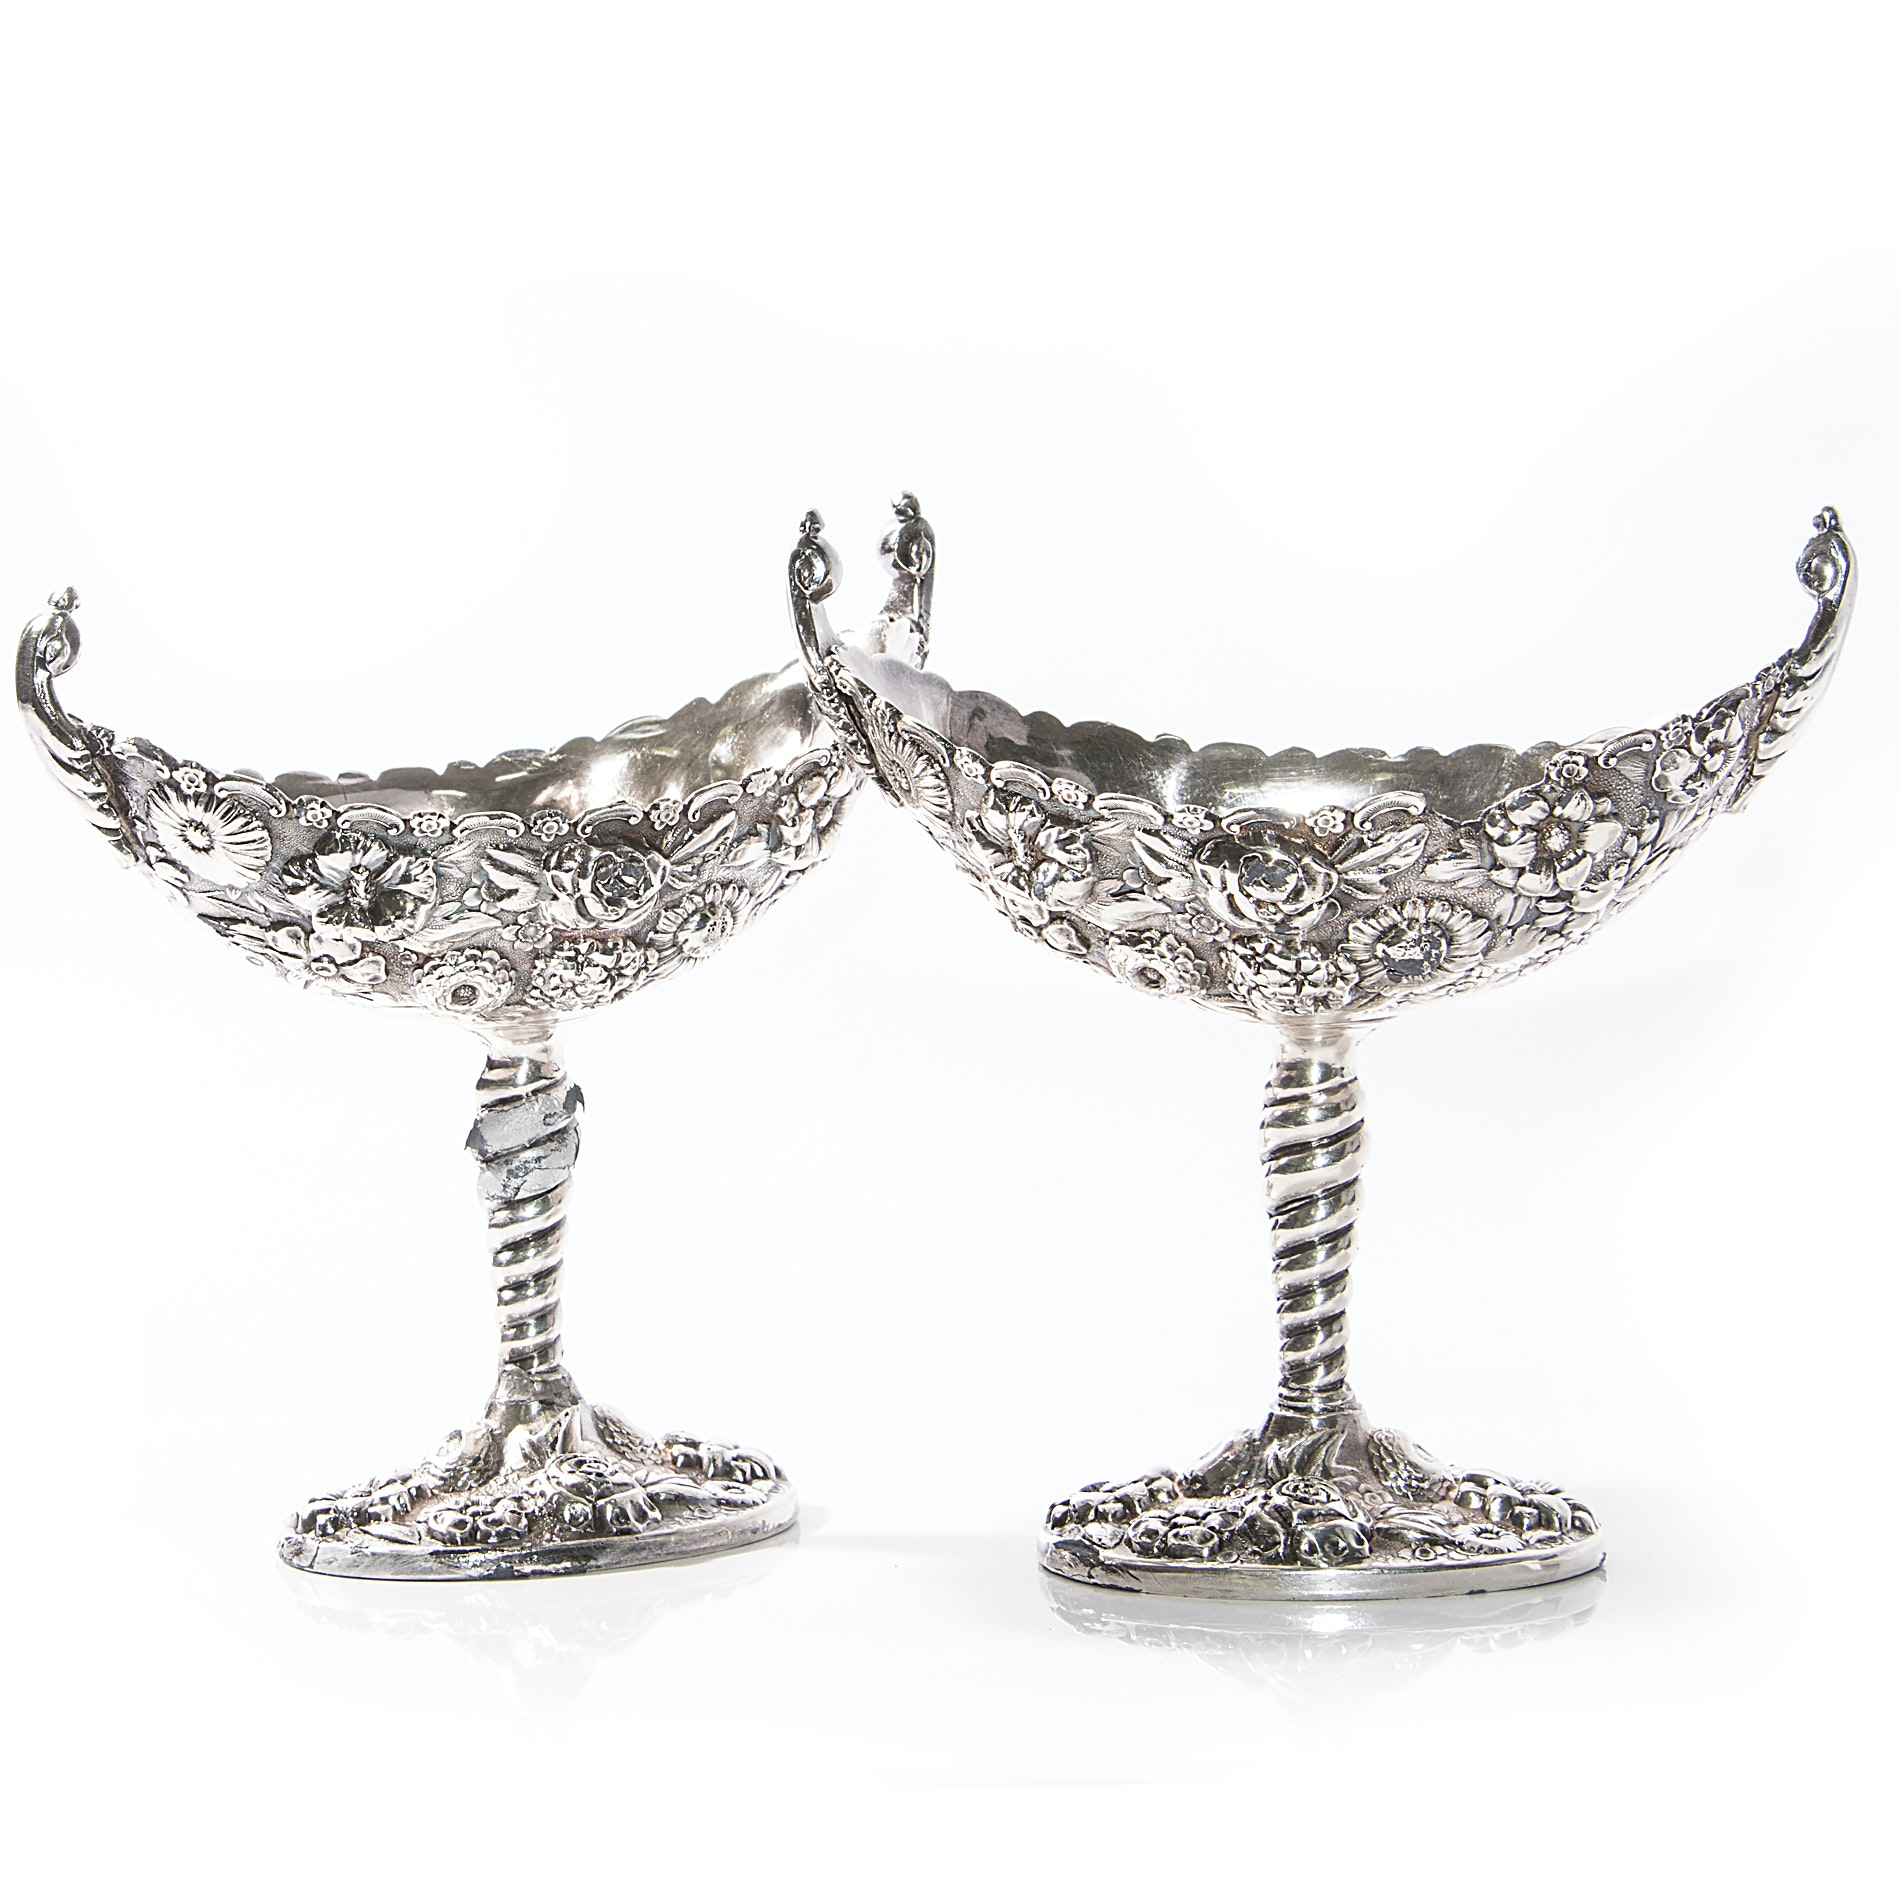 Pair of S. Kirk & Son Silver Plate Repoussé Candy Dishes